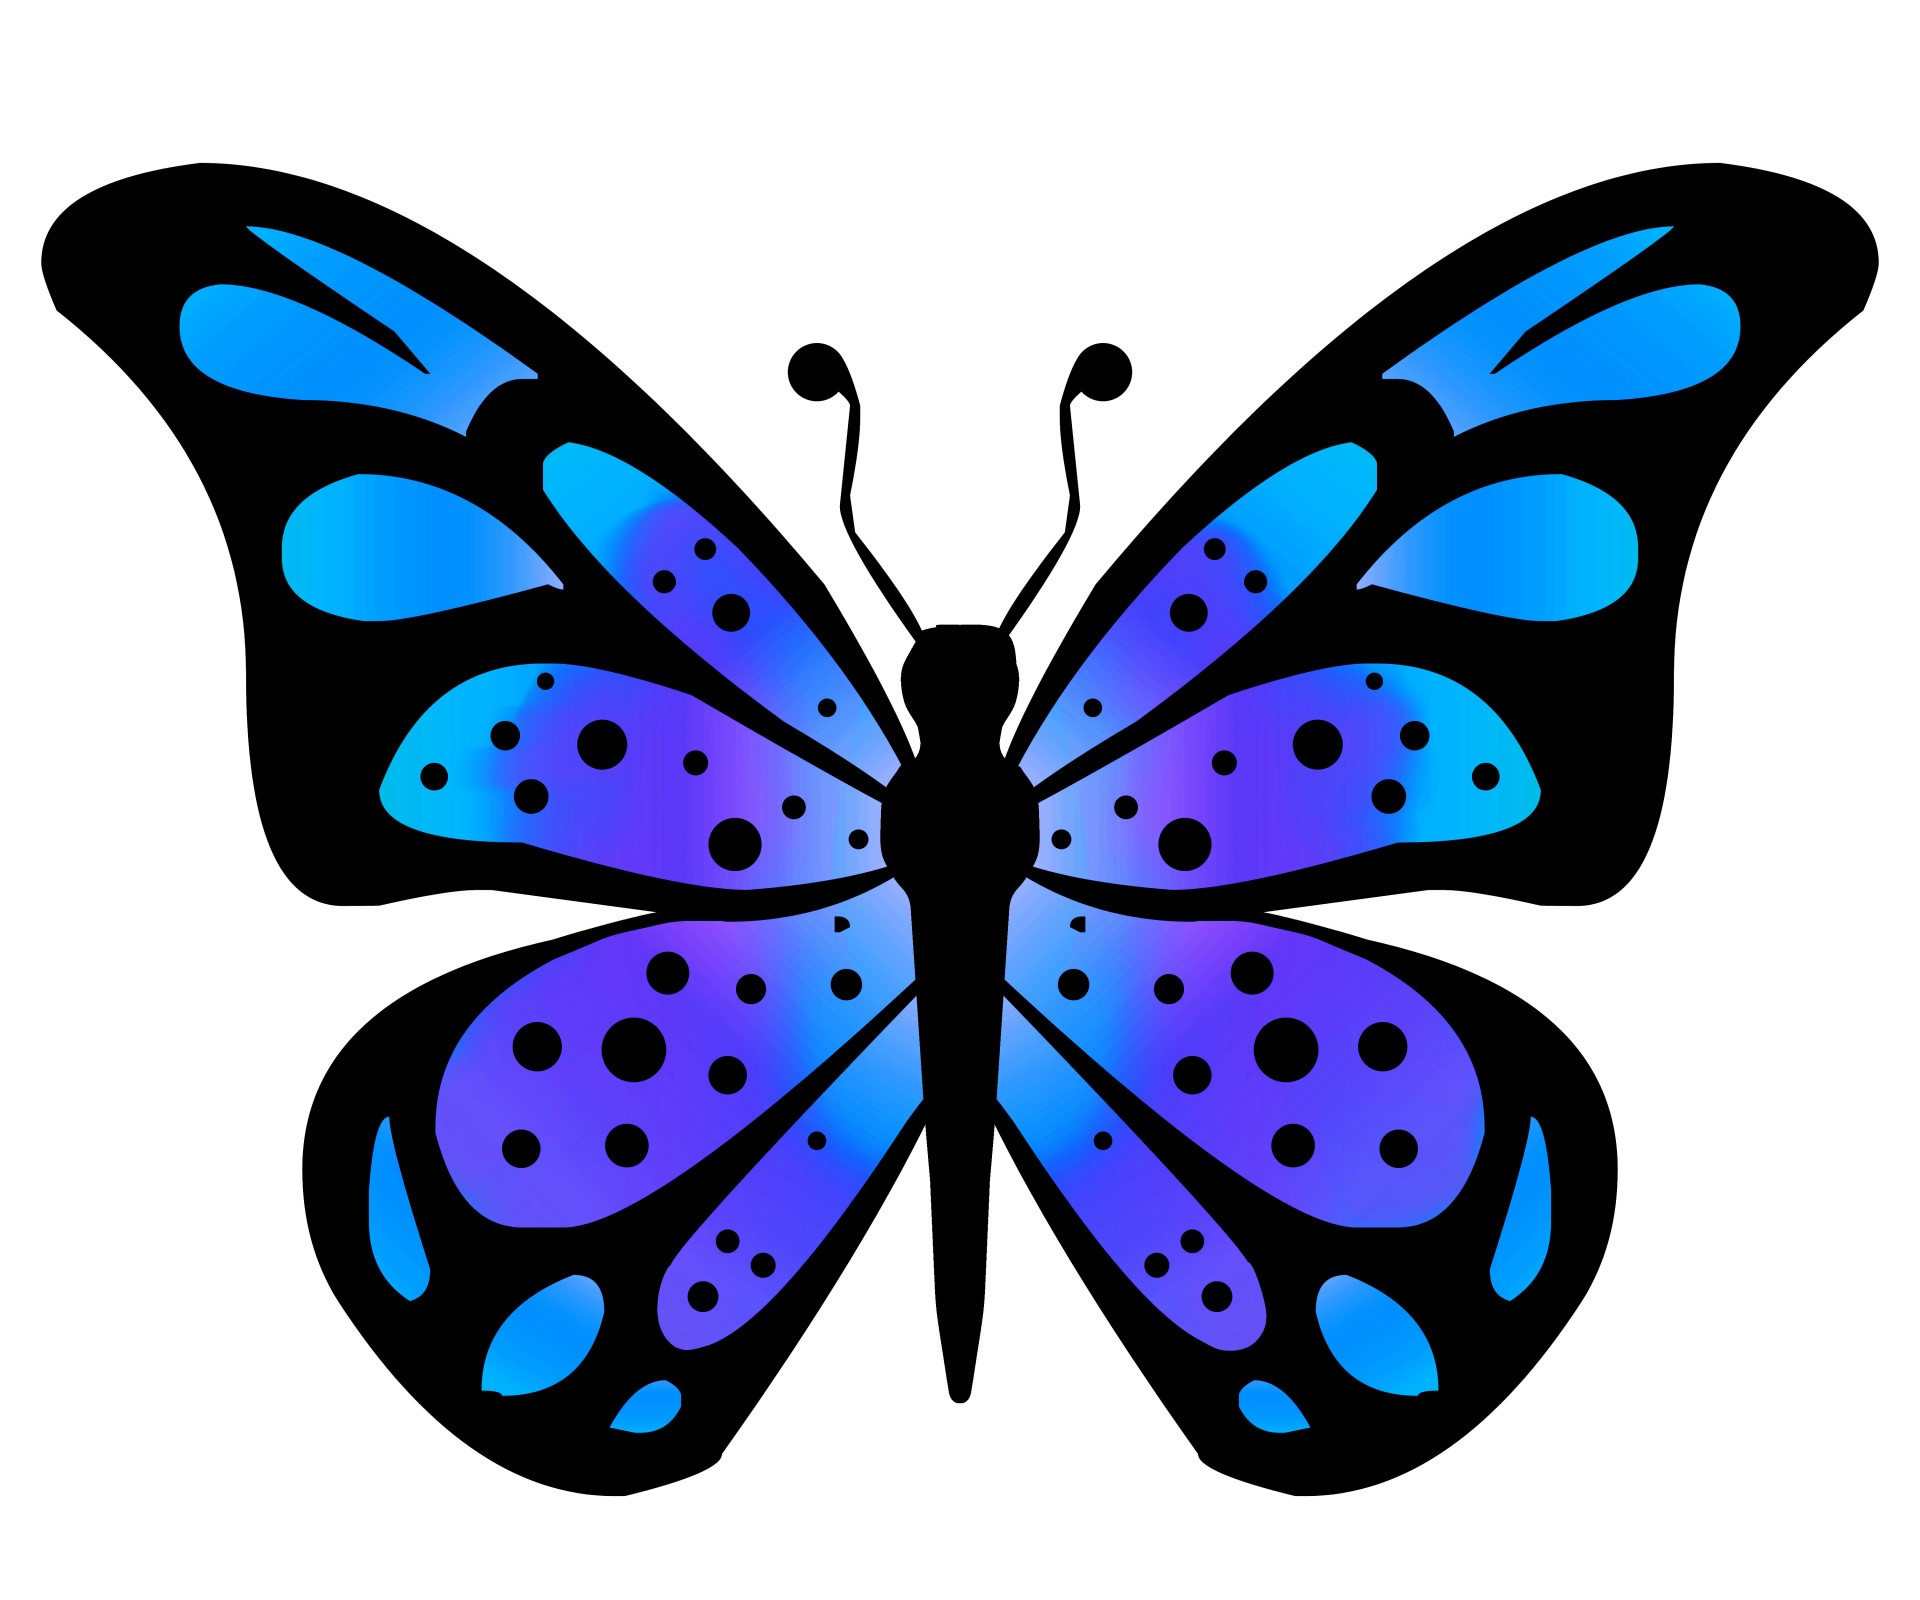 Clipart Butterfly 3 .-Clipart Butterfly 3 .-1